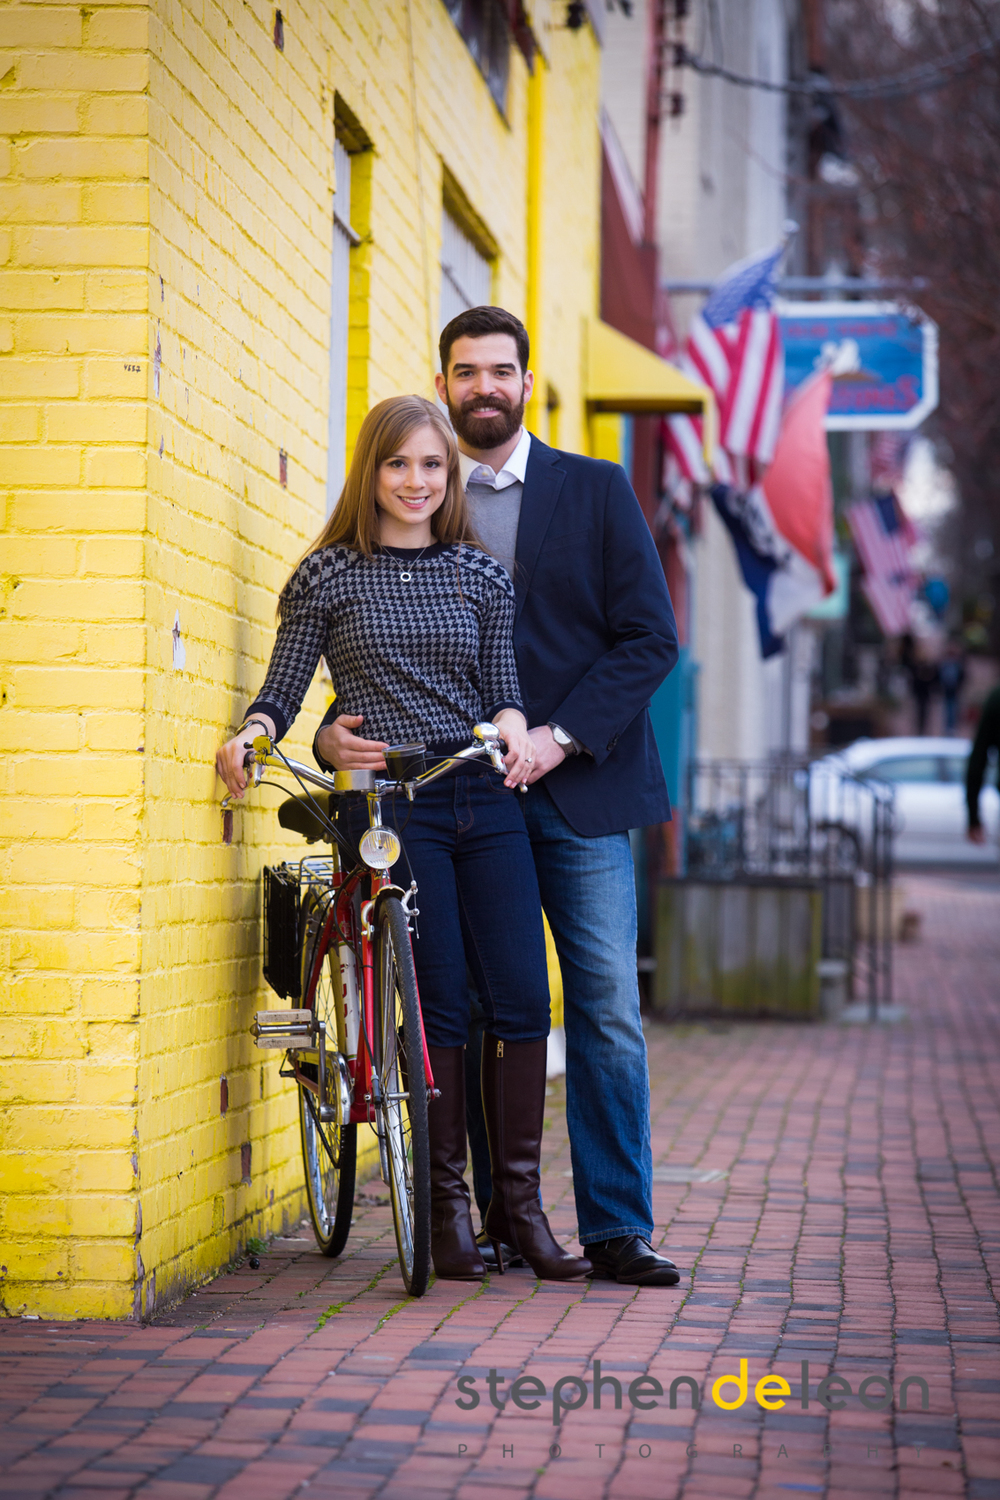 Old-town-bike-engagement-session0003.jpg